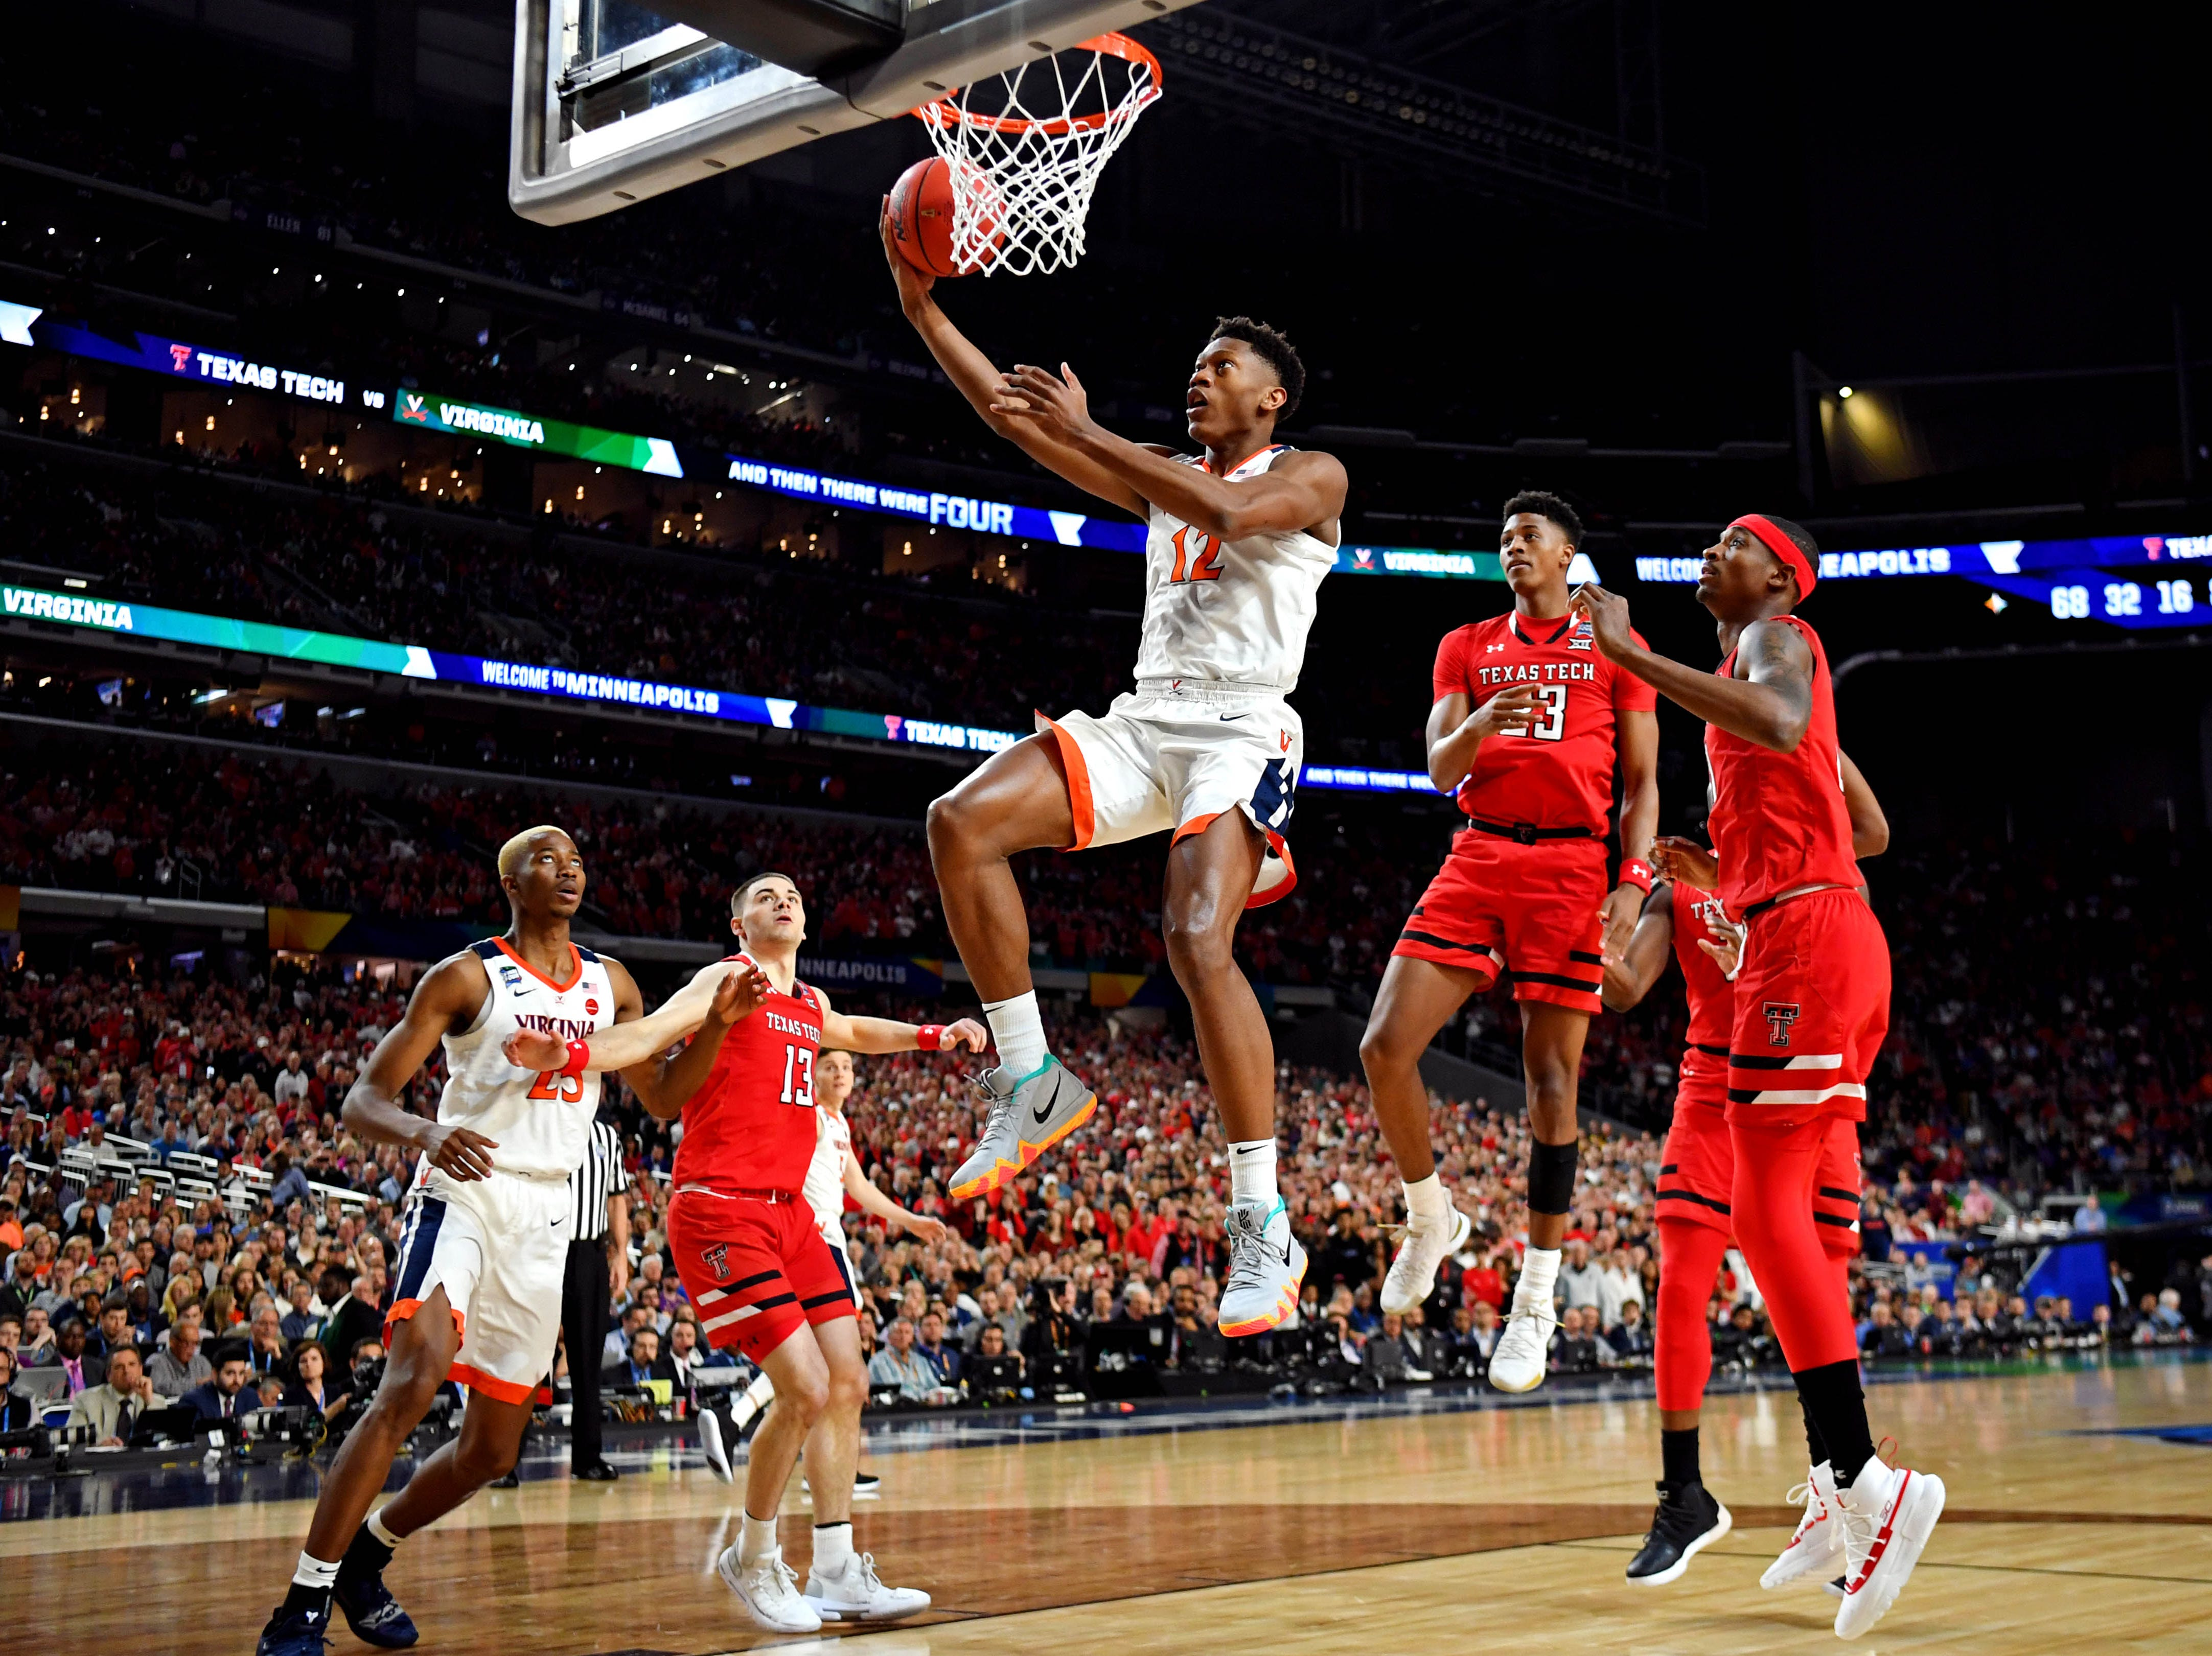 Apr 8, 2019; Minneapolis, MN, USA; Virginia Cavaliers guard De'Andre Hunter (12) shoots the ball against Texas Tech Red Raiders forward Tariq Owens (11) during the first half in the championship game of the 2019 men's Final Four at US Bank Stadium. Mandatory Credit: Bob Donnan-USA TODAY Sports